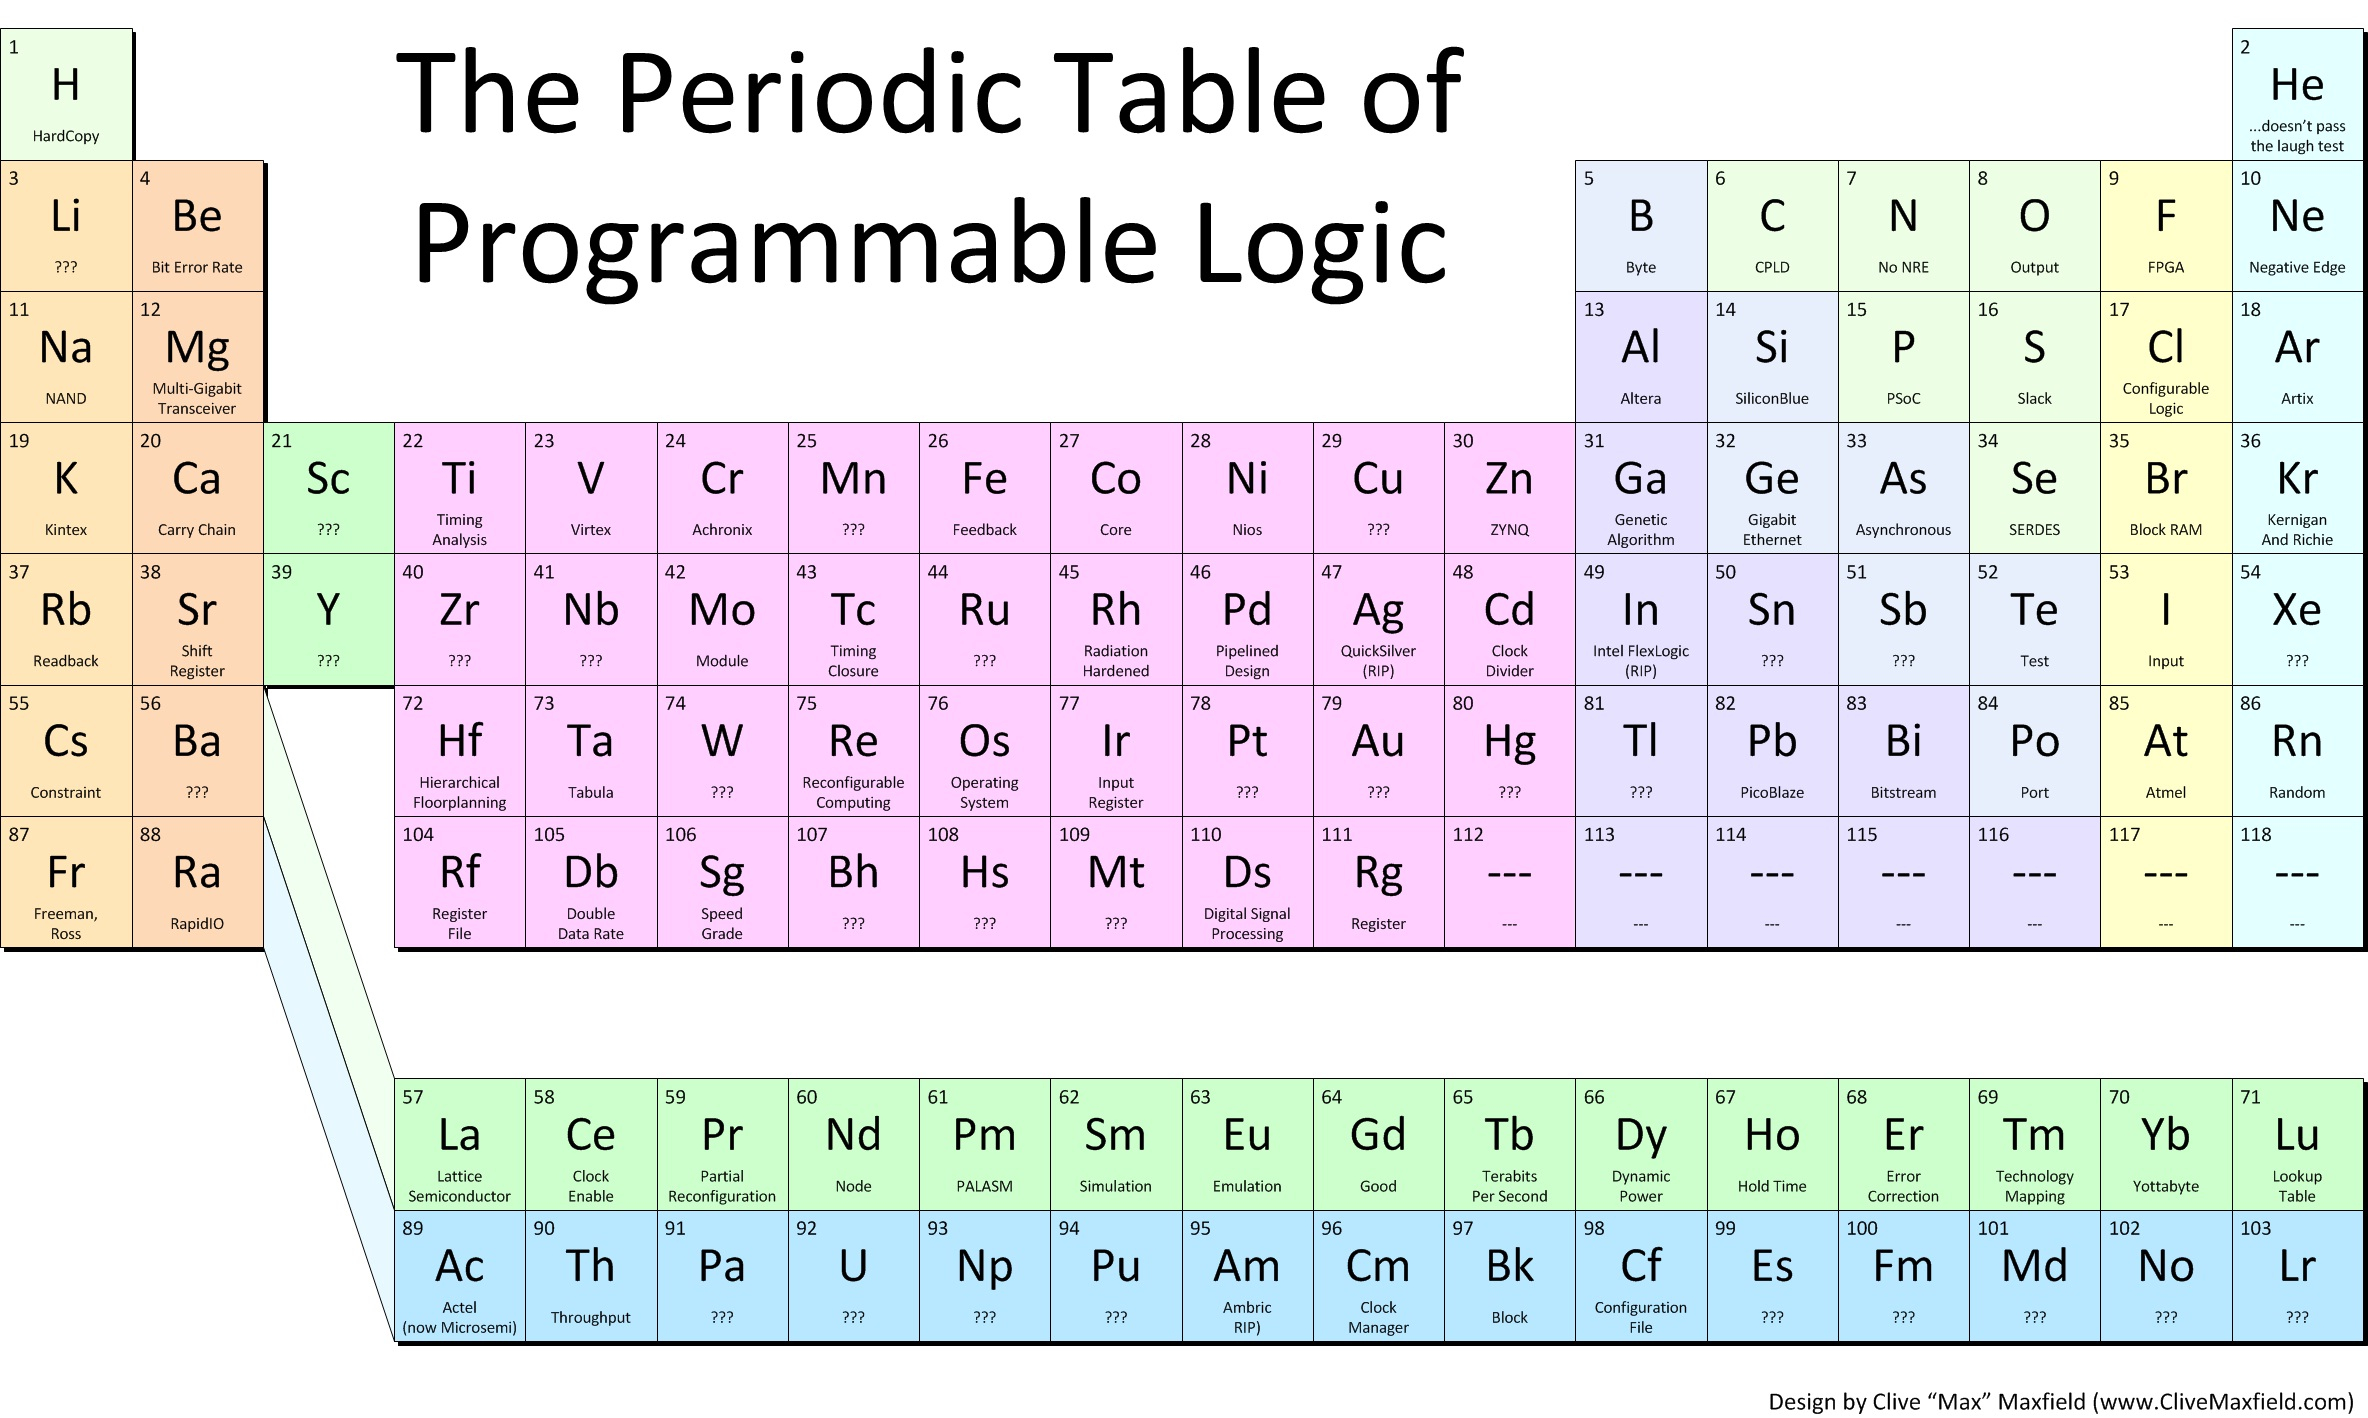 The periodic table of programmable logic rev 1 ee times clivemaxfieldarea51periodic table prog logic v1g gamestrikefo Images